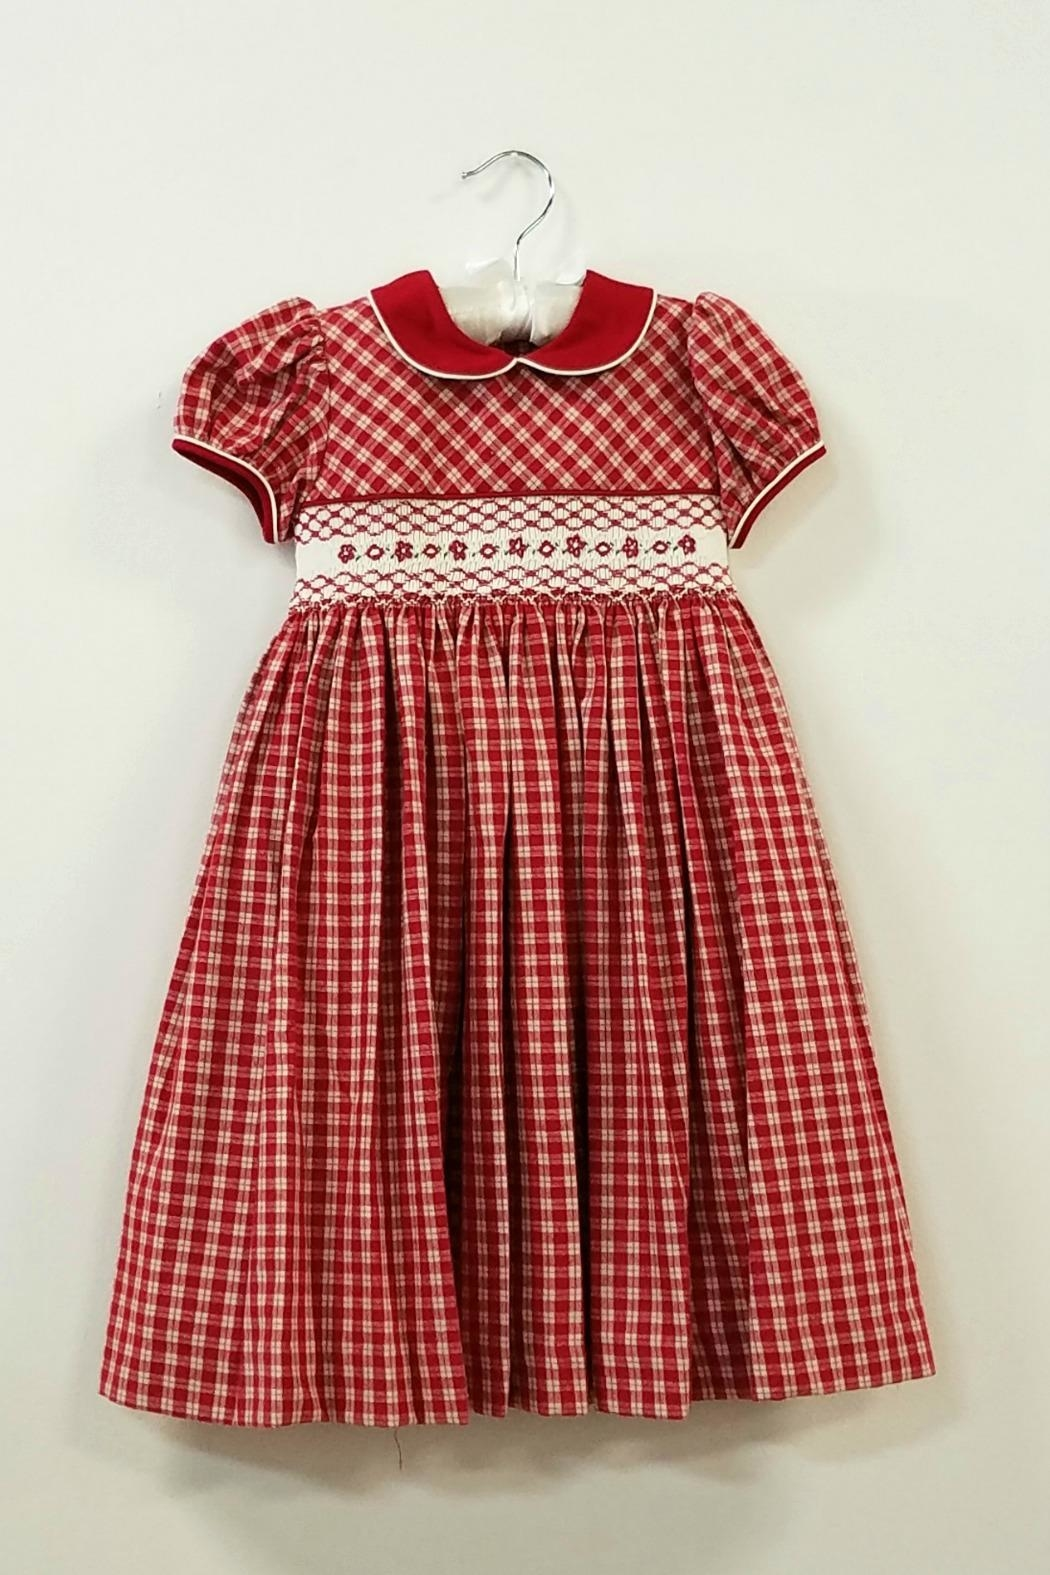 430dc32f9a80 Will'beth Red Plaid Smocked Dress from South Carolina by The ...